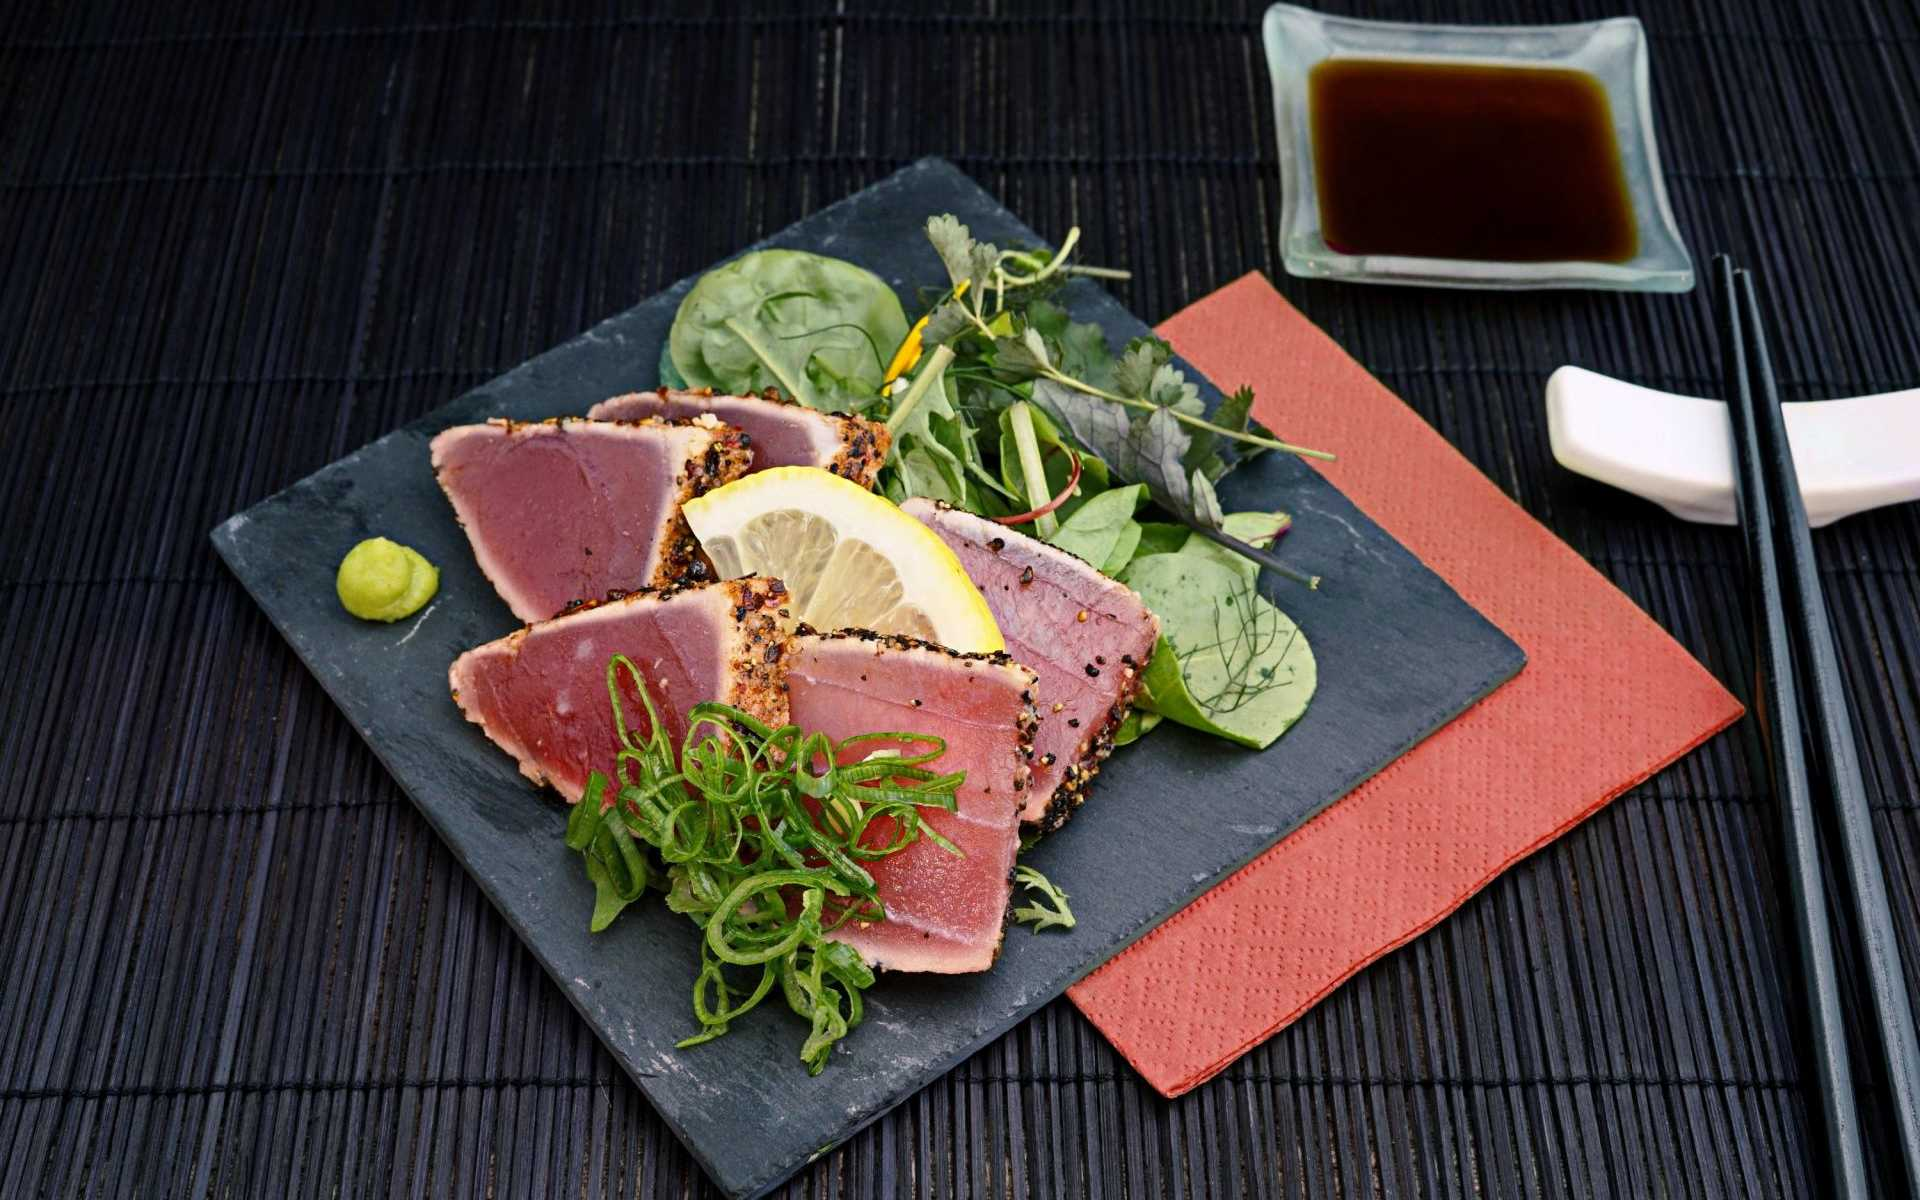 Fancy plate of seared ahi tuna salad on black dish, dark placemat and chopsticks, and bowl of soy sauce